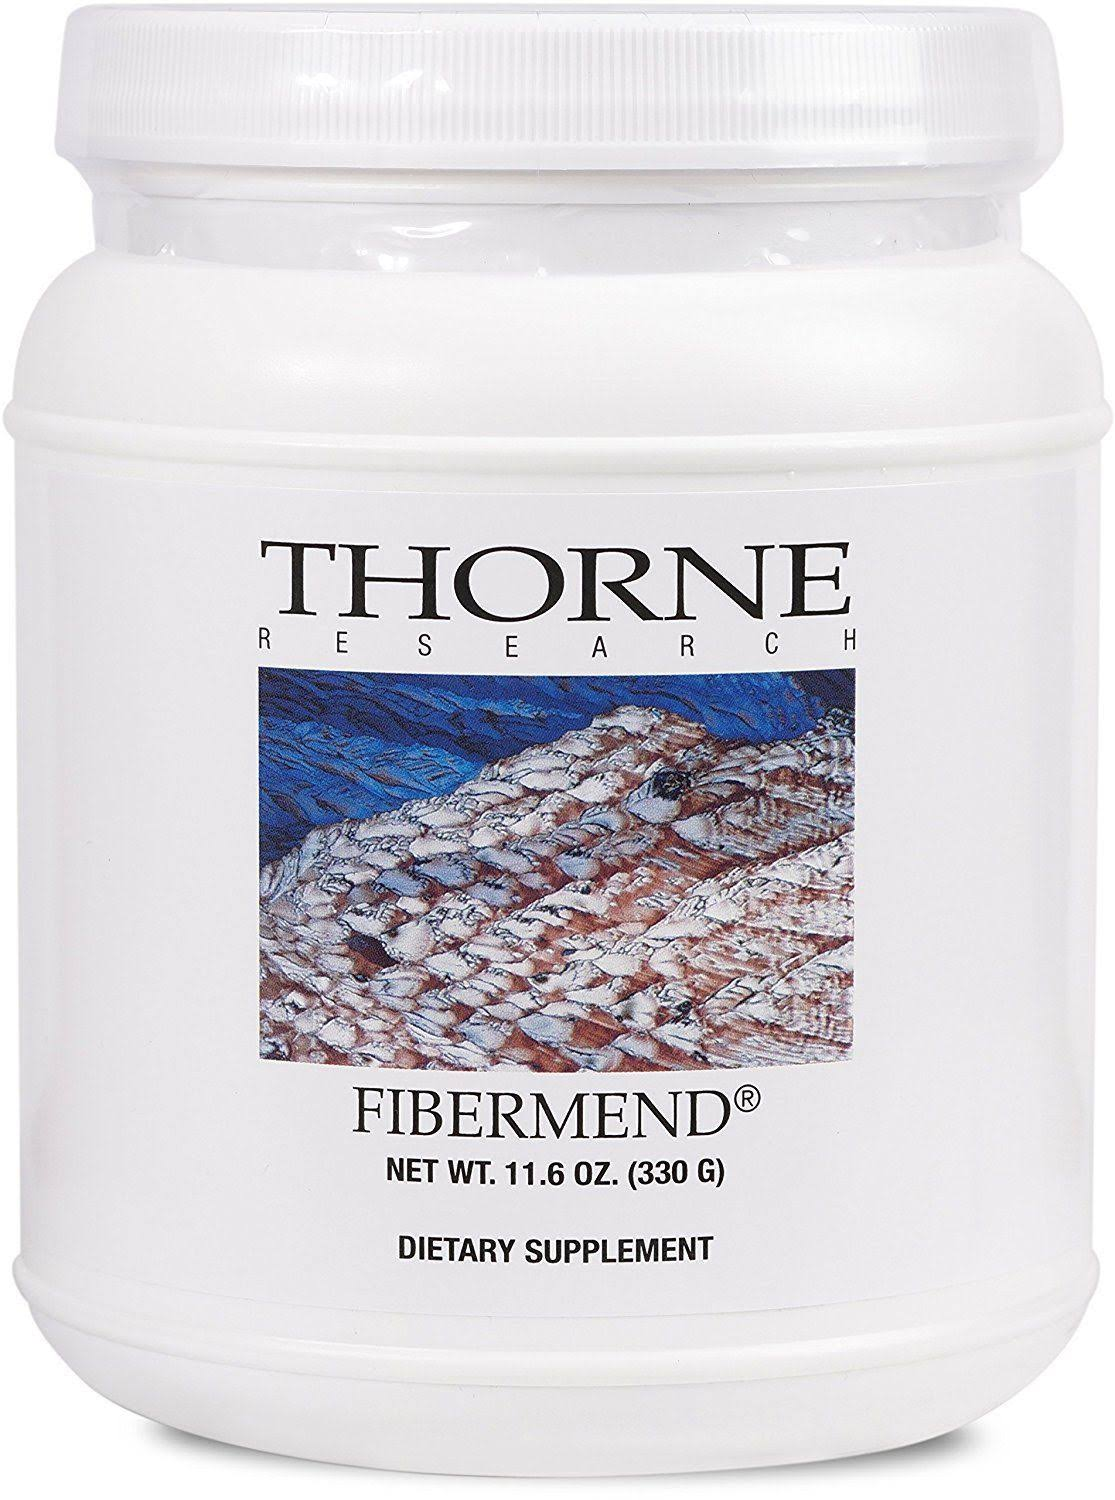 Thorne Research FiberMend Fiber Supplement Powder - 11.6oz